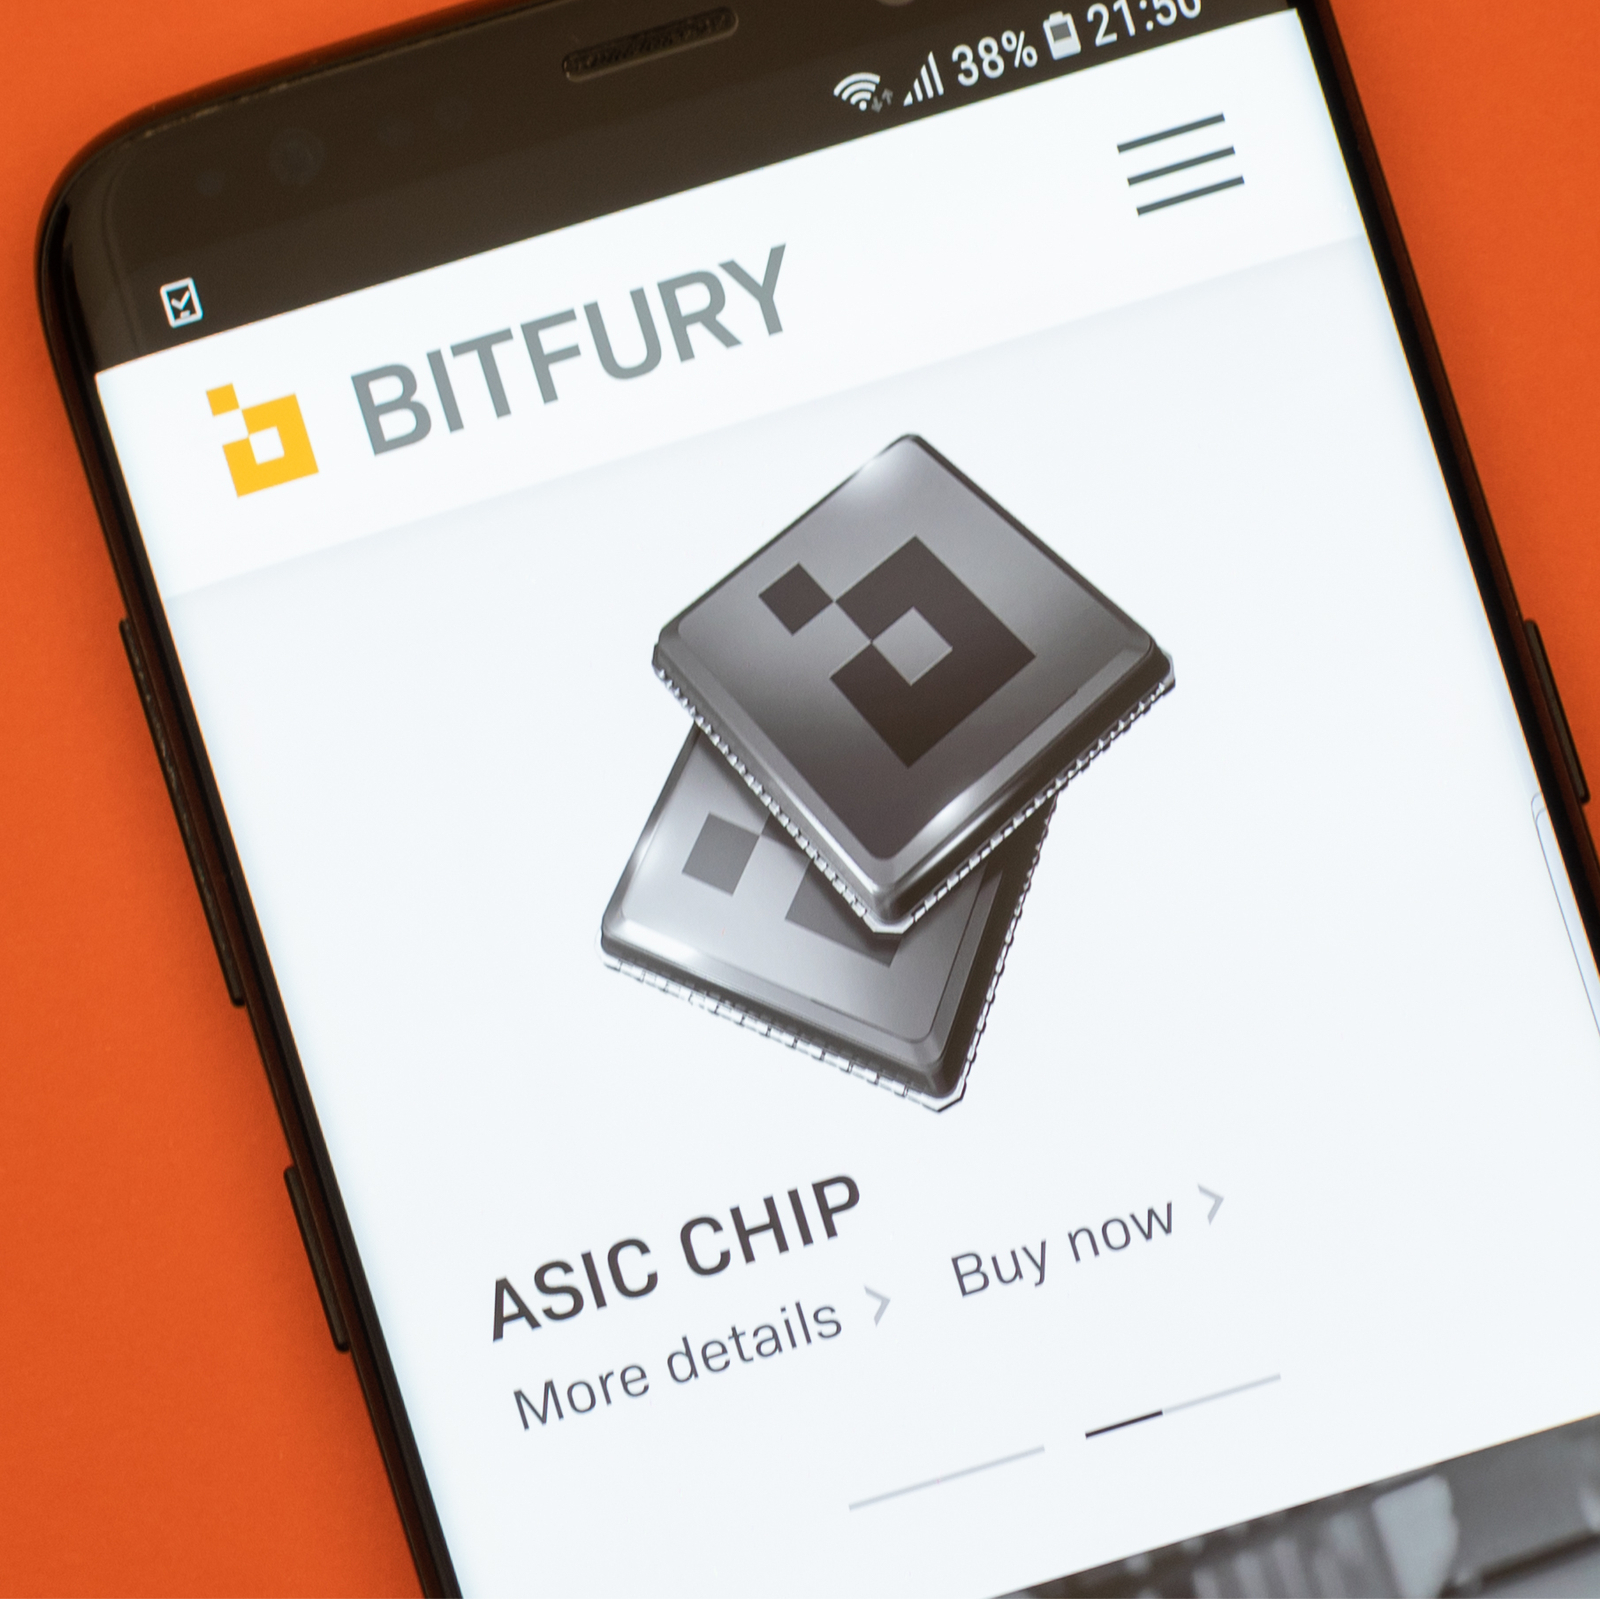 Bitfury Secures $80M in Private Placement